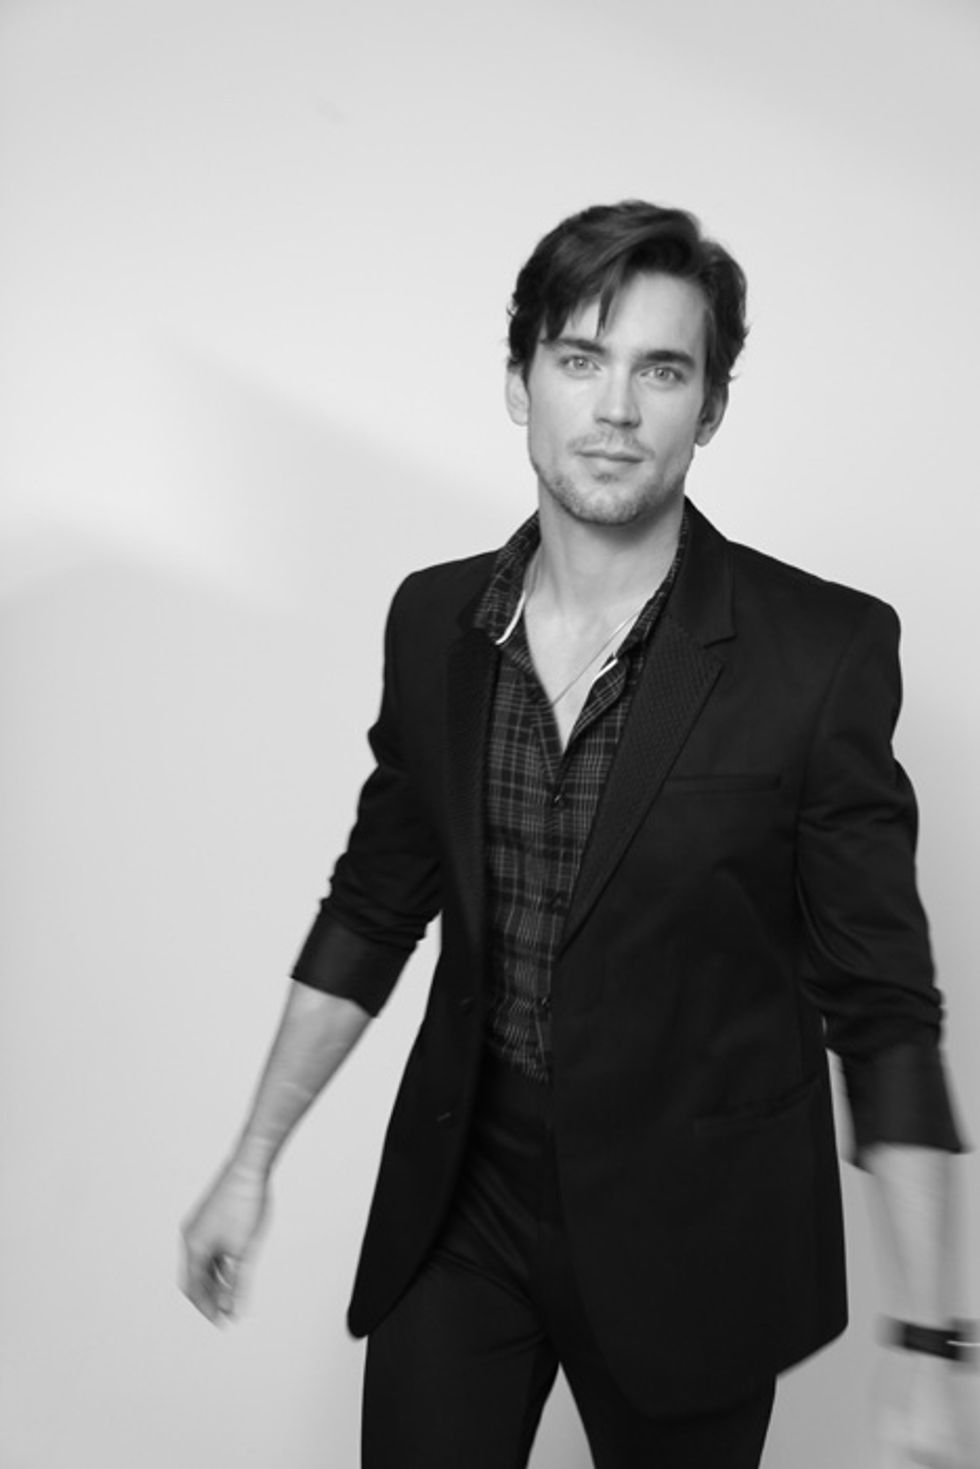 Extra Extra! More With Matt Bomer from our Beautiful People Issue